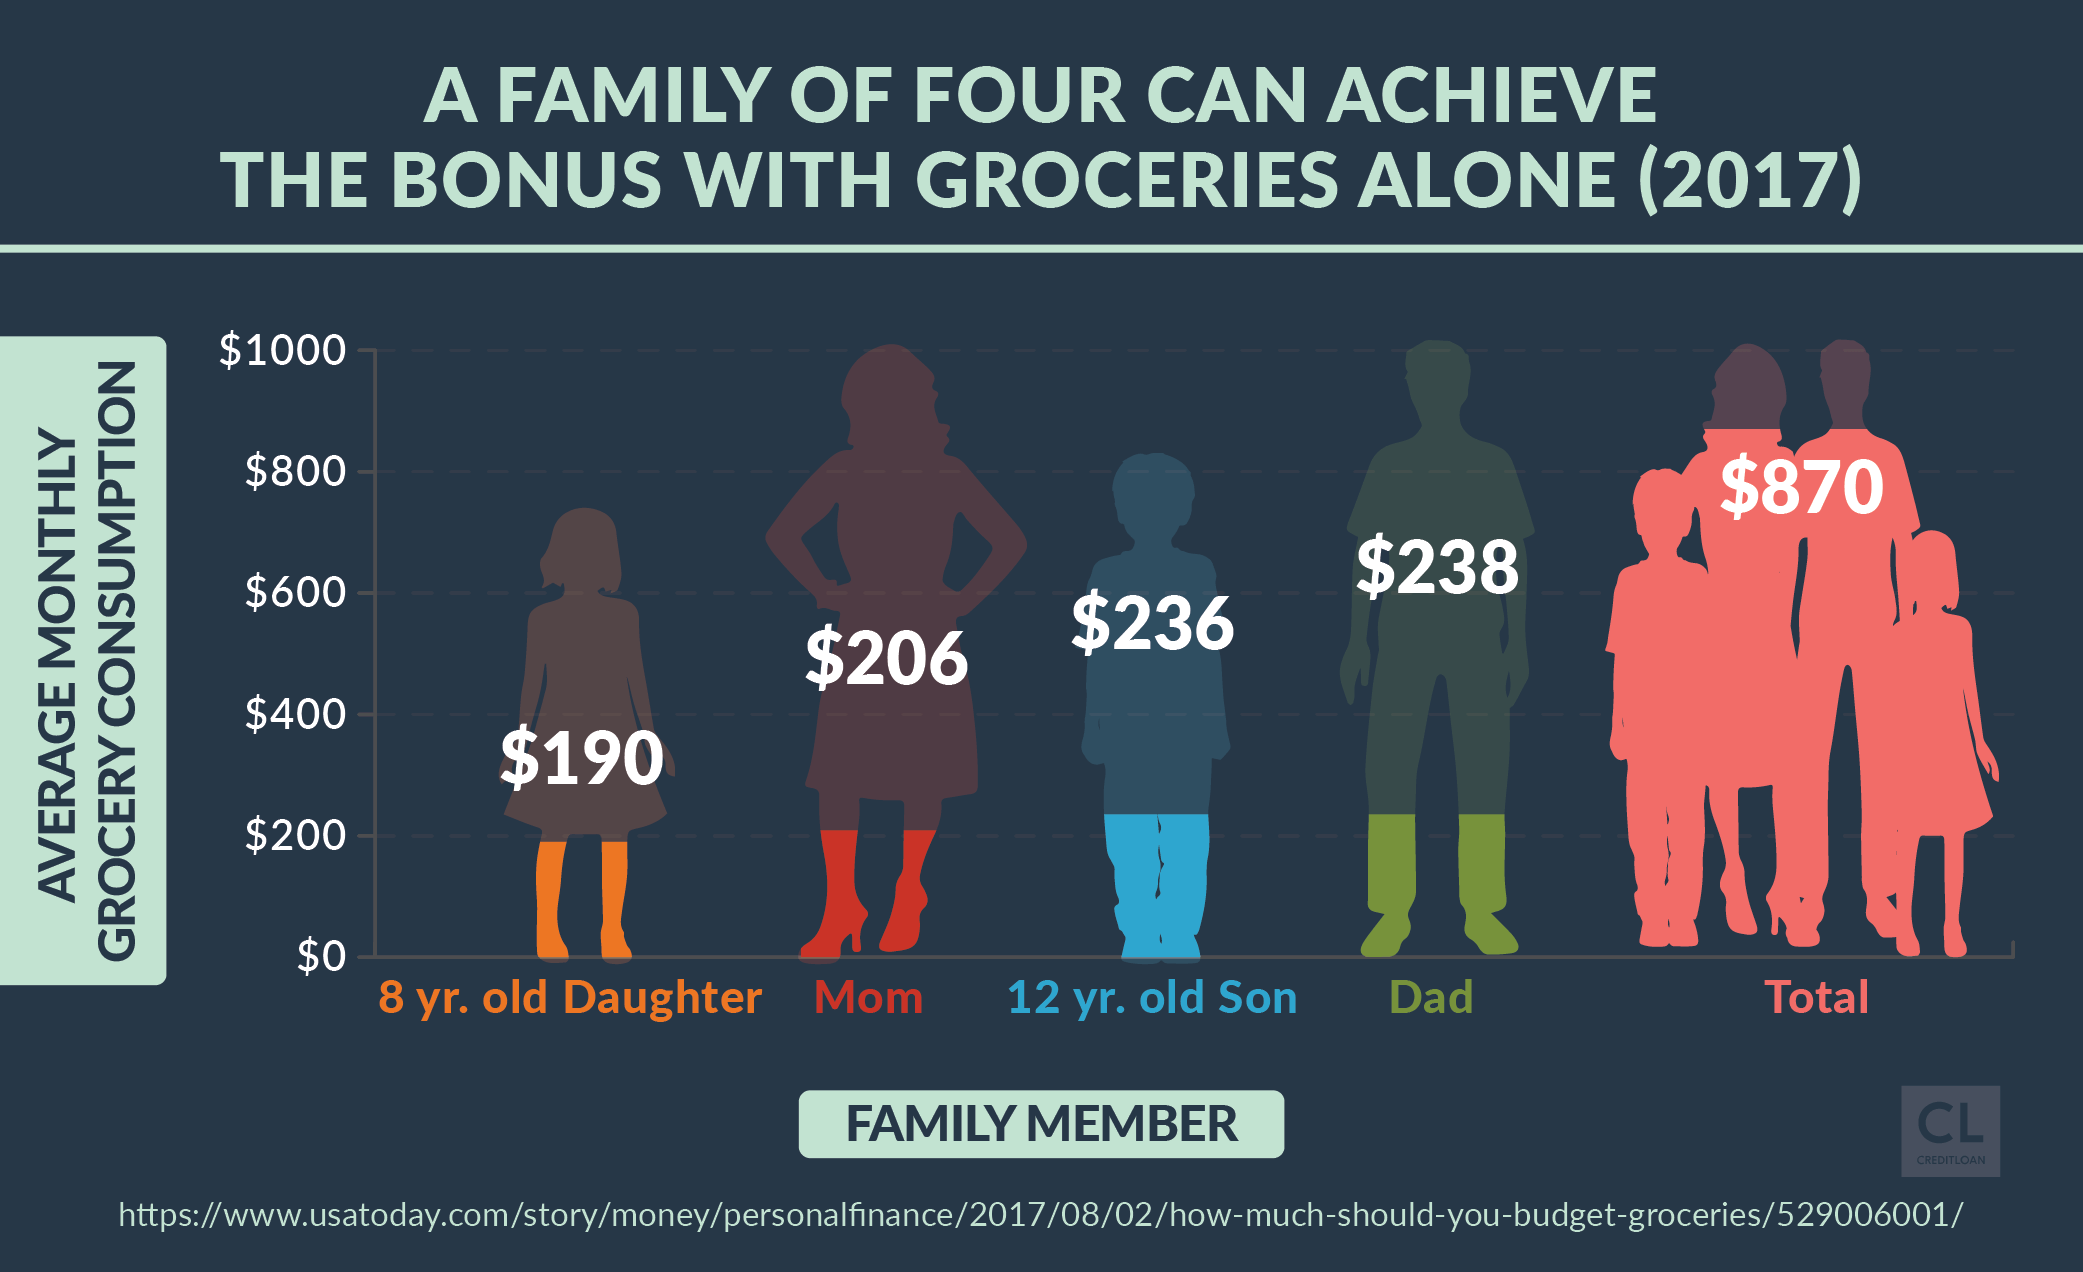 A Family of Four Can Achieve the Bonus With Groceries Alone in 2017